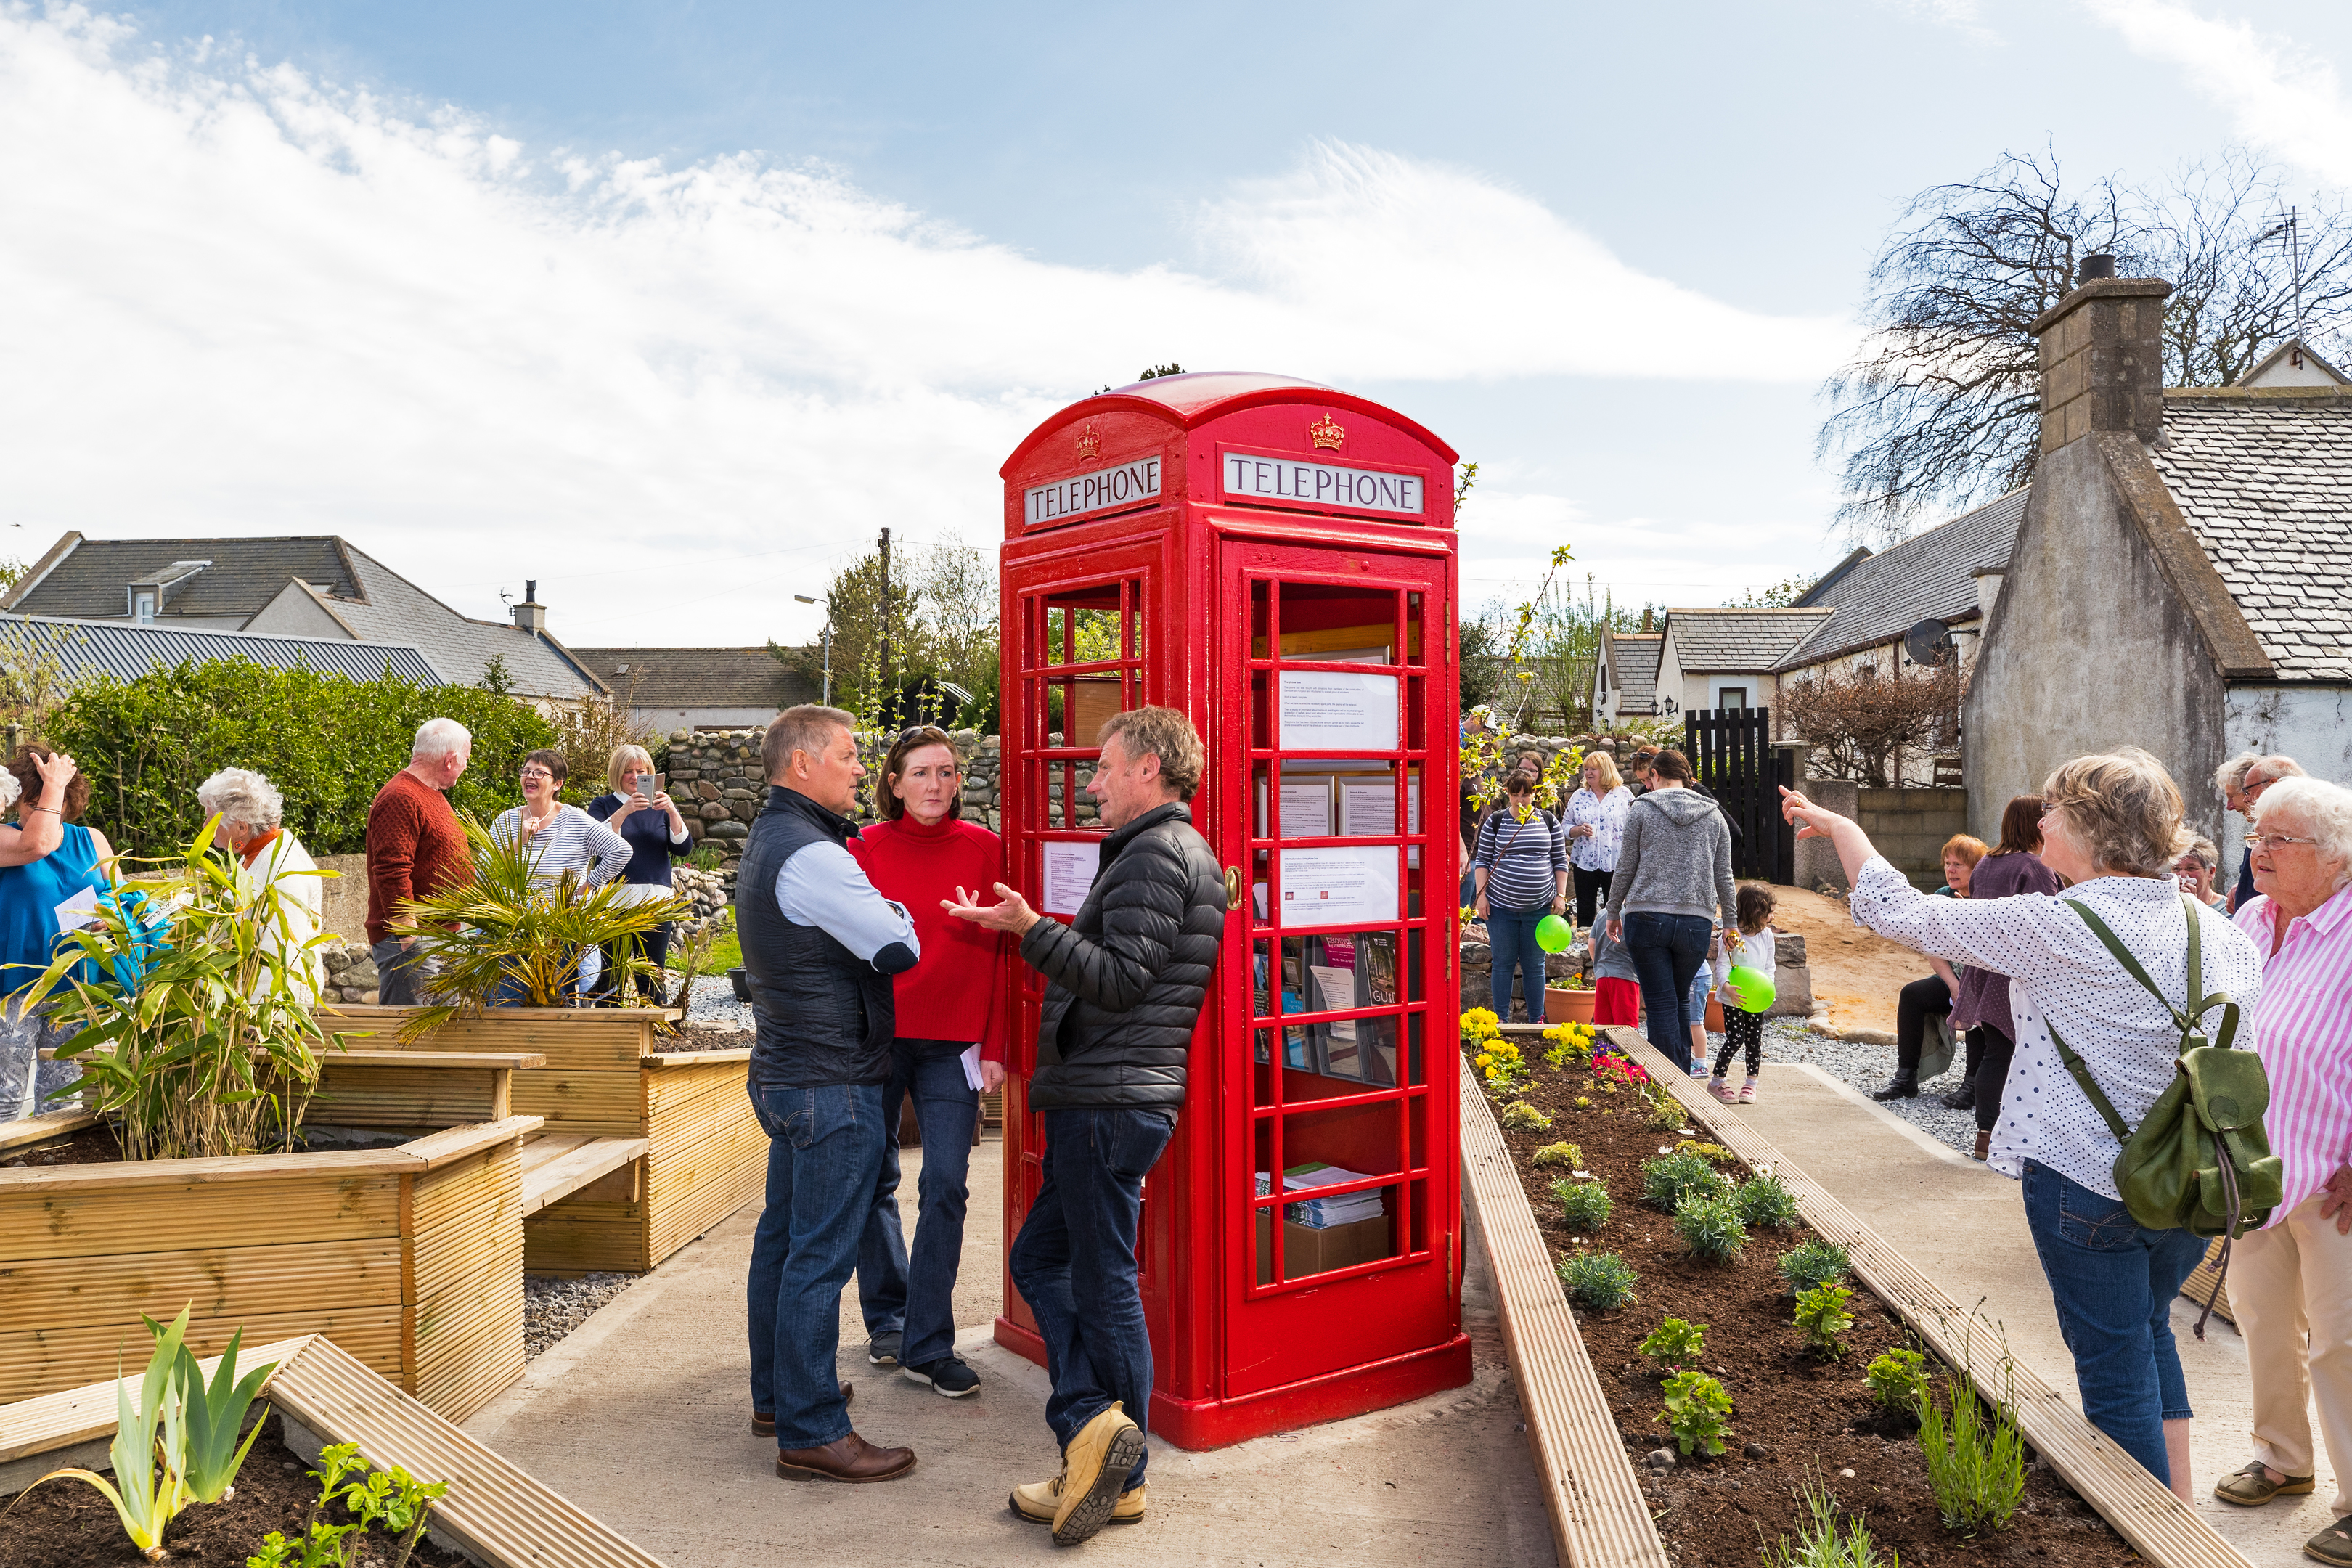 The opening ceremony of the Barren plot of rubble in Garmouth is transformed into sensory garden in village with beach and distillery themes.